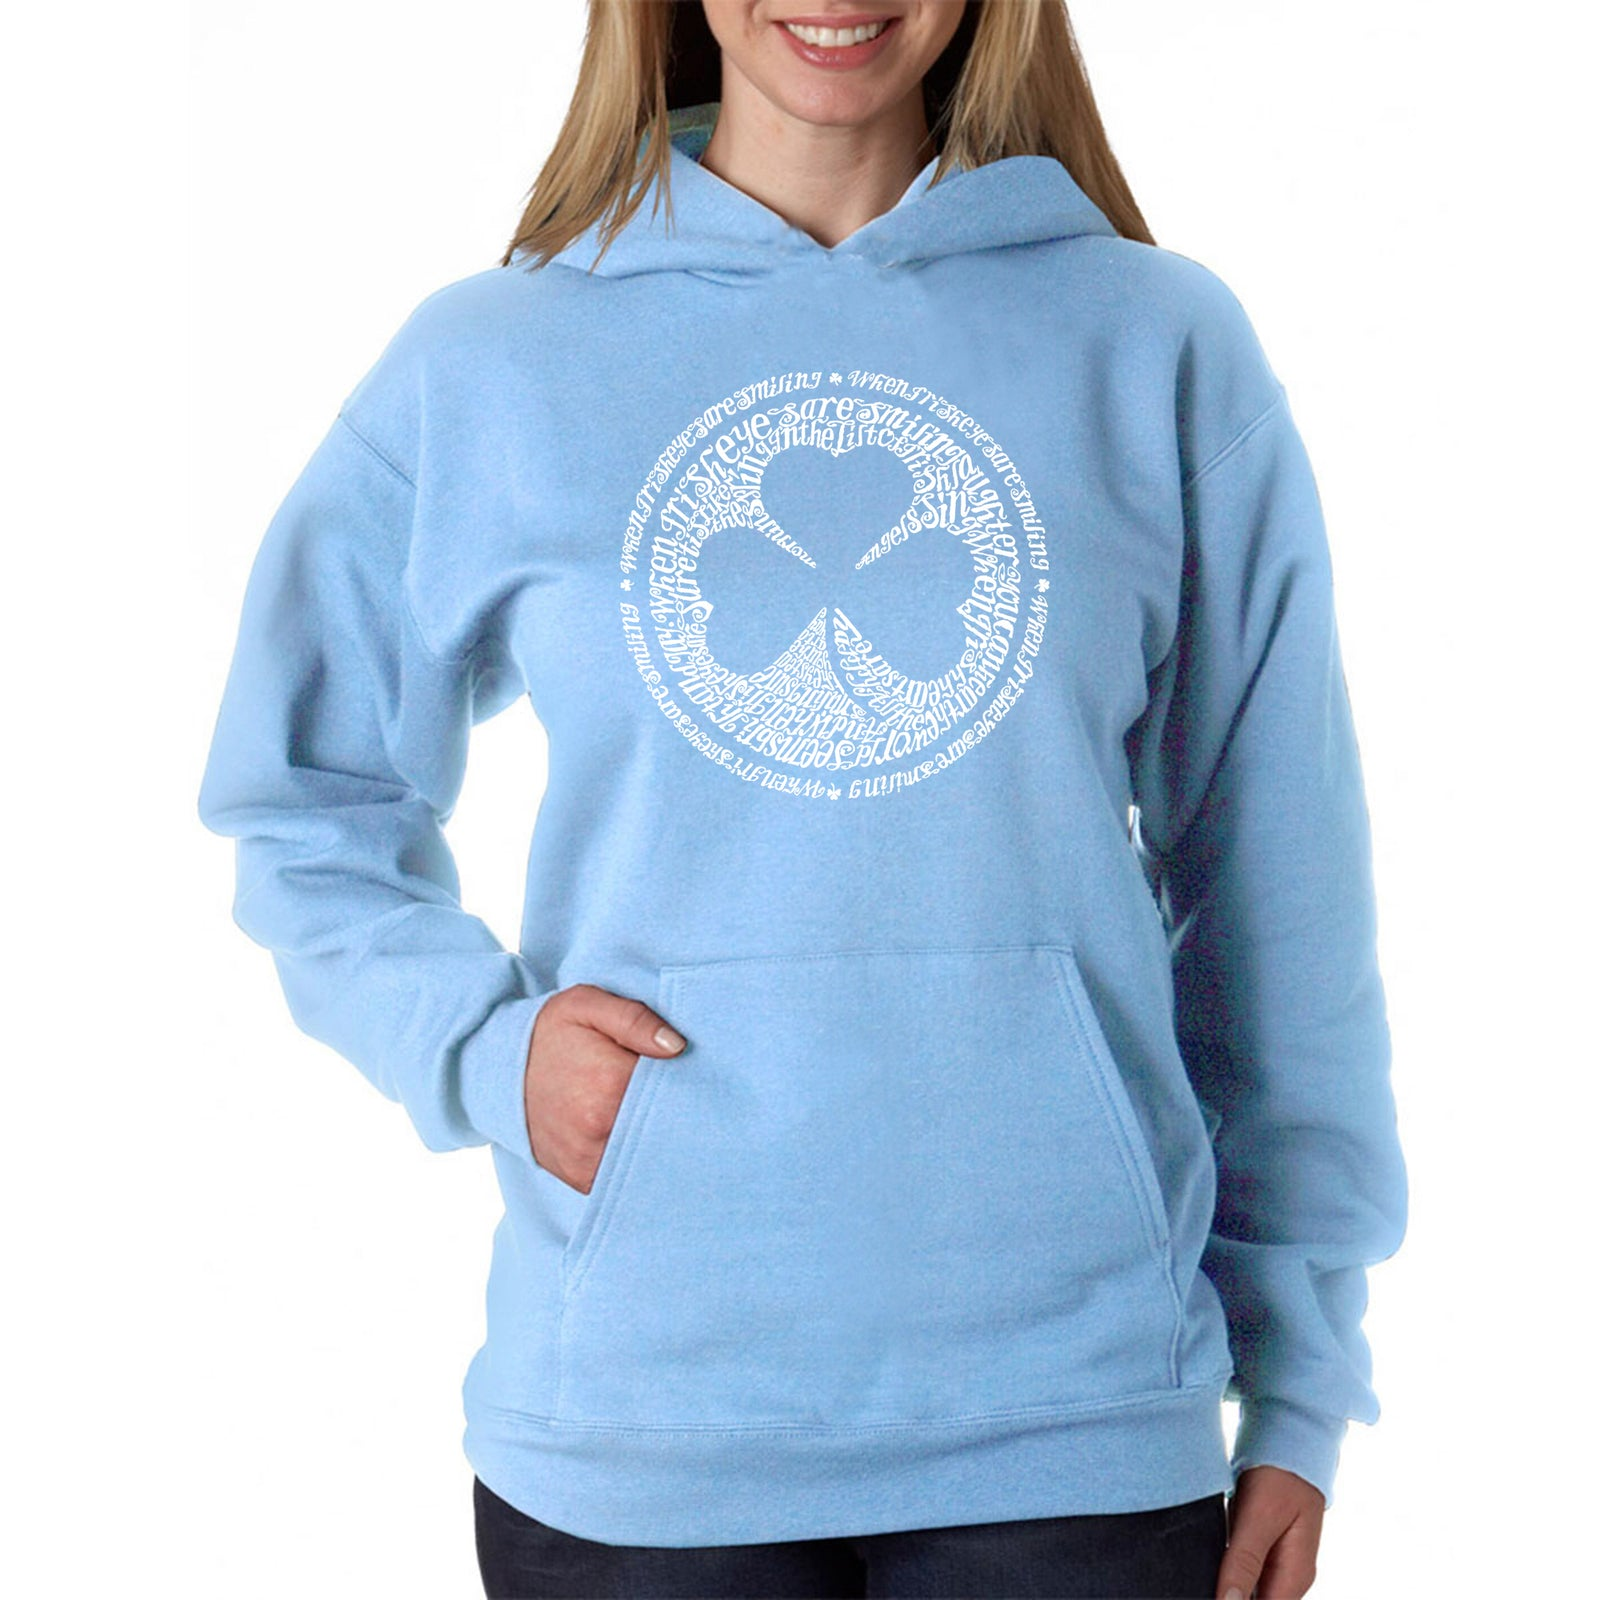 Women's Hooded Sweatshirt -LYRICS TO WHEN IRISH EYES ARE SMILING